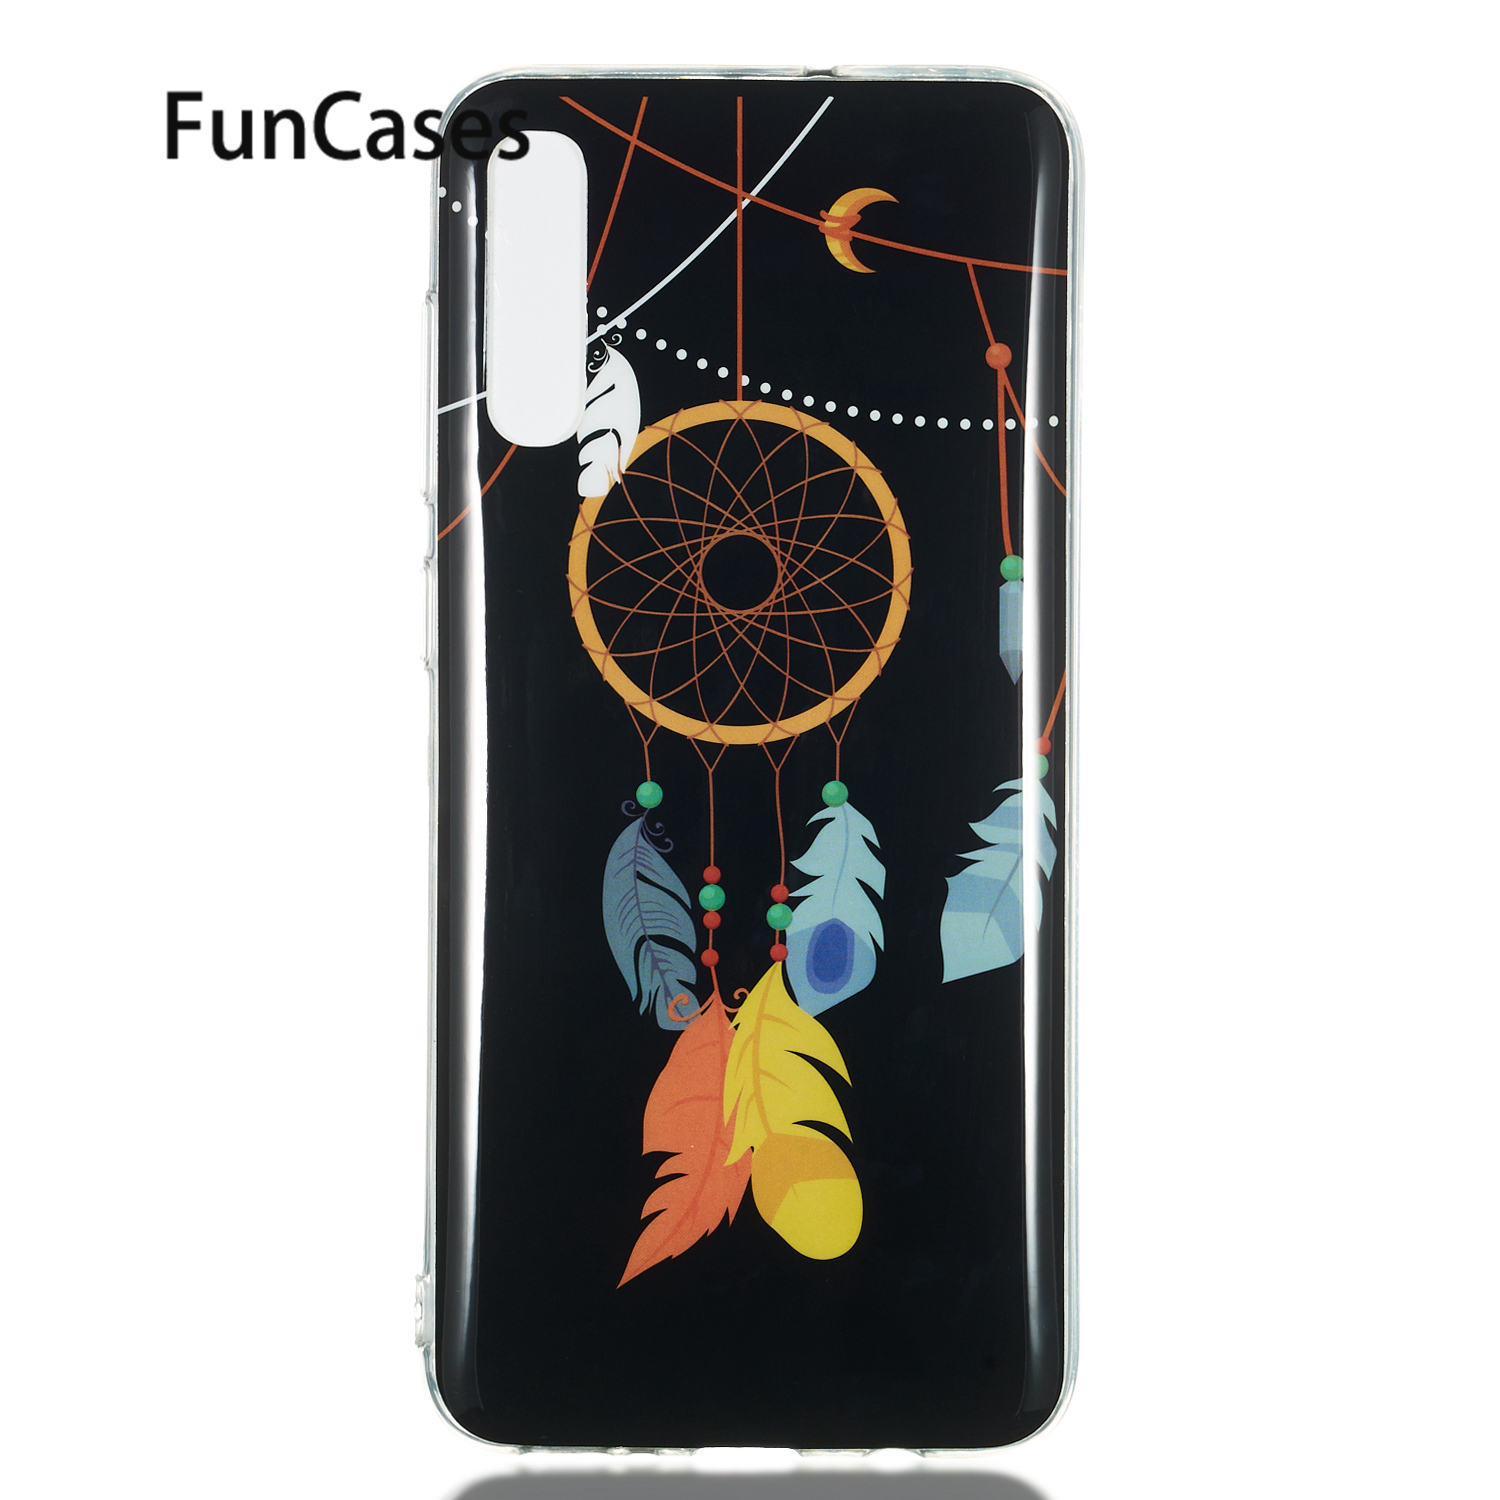 Dog Phone Cover For cover <font><b>Samsung</b></font> <font><b>A70</b></font> Cove Glitter Silicone Case Cover <font><b>Hoesje</b></font> sFor <font><b>Samsung</b></font> Galaxy cover <font><b>A70</b></font> Soft Silicone Cases image